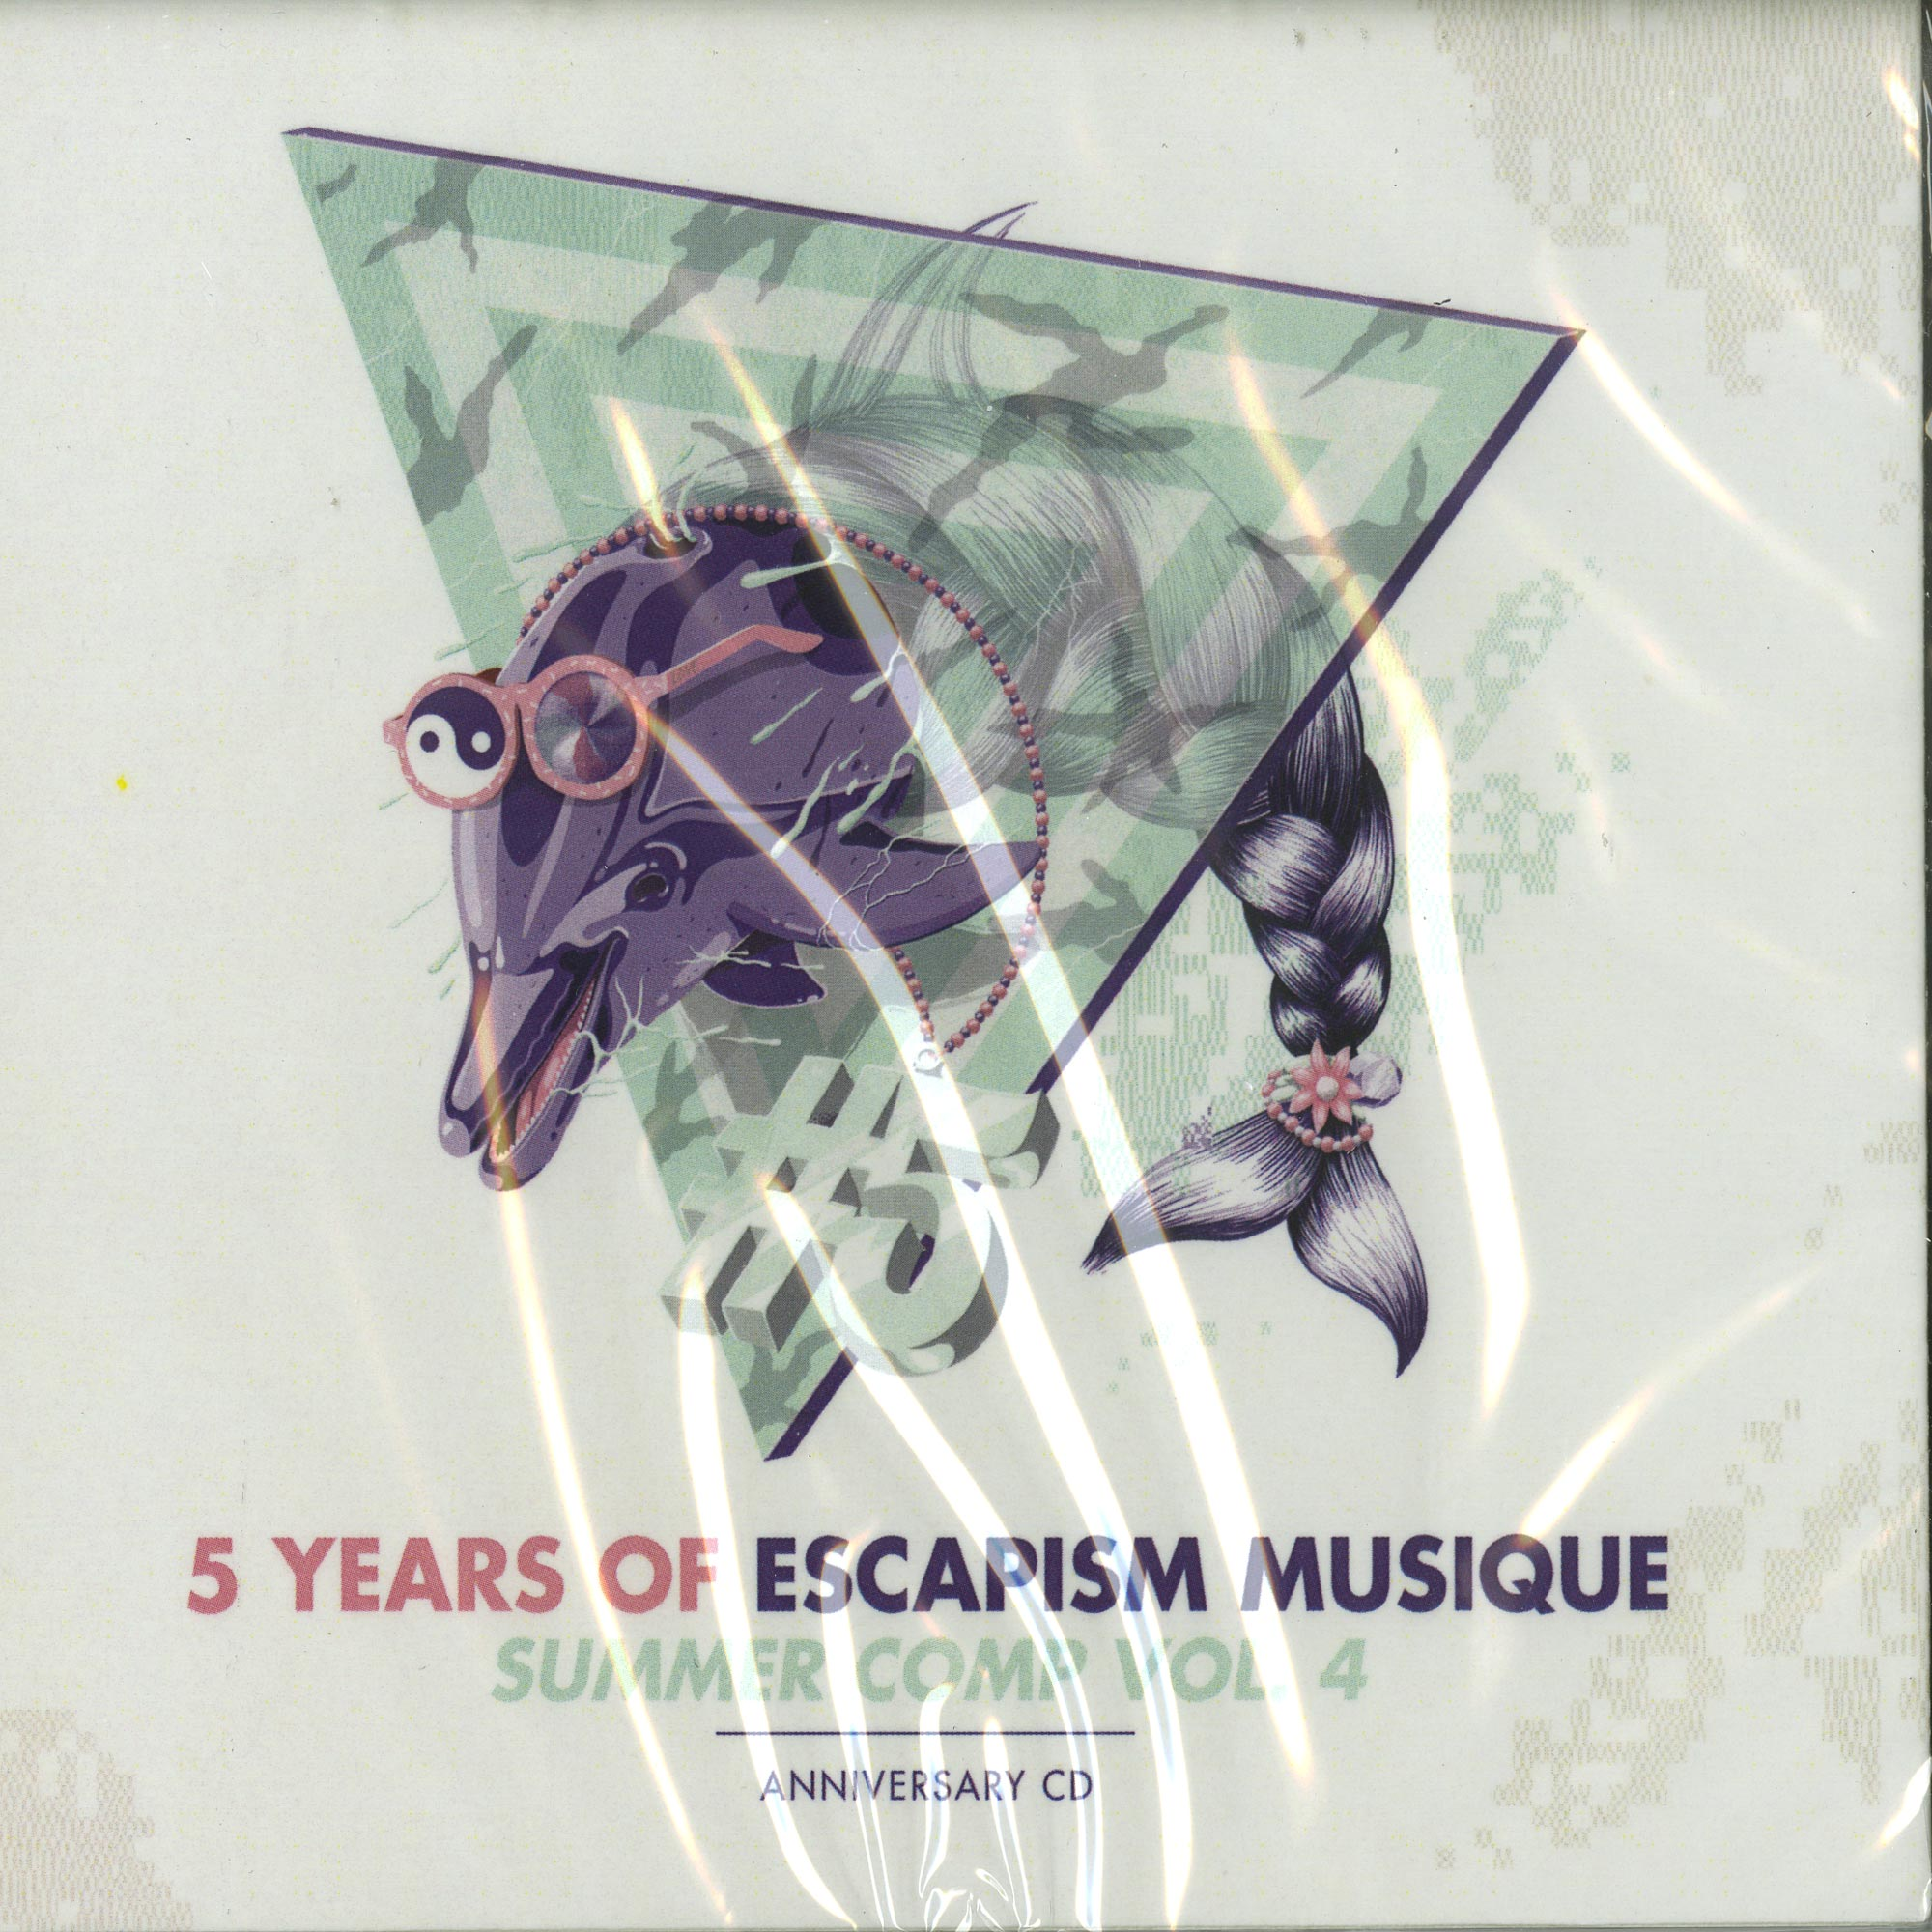 Various Artists - 5 YEARS OF ESCAPISM MUSIQUE- SUMMER COMP VOL 4